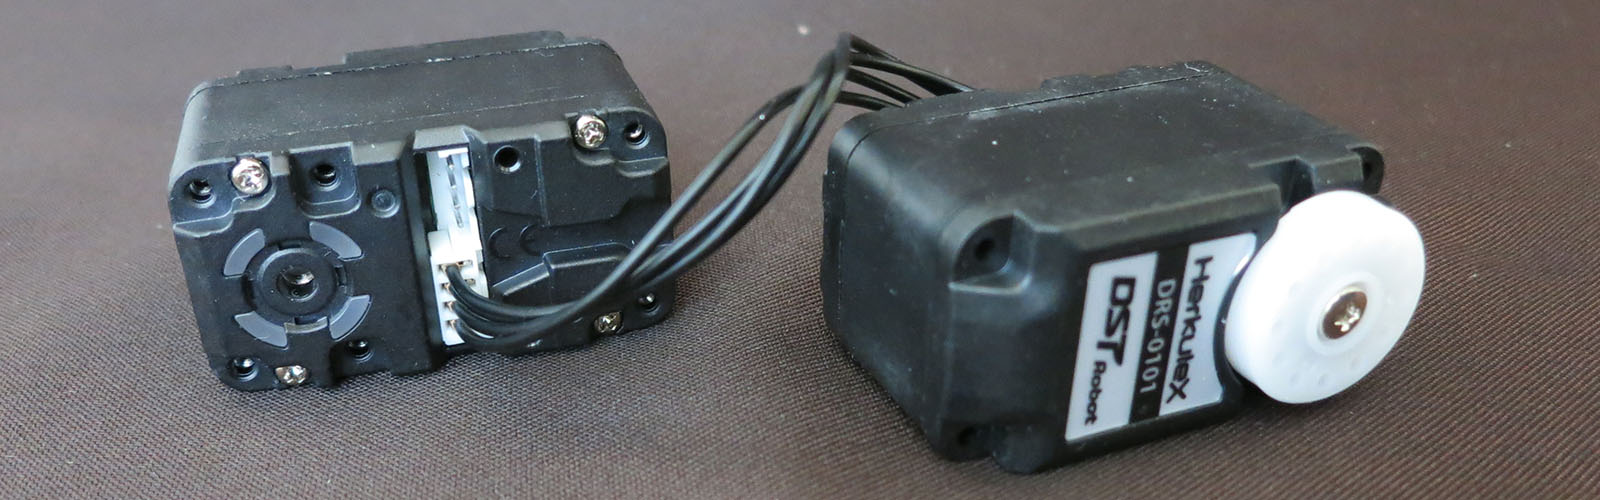 Wrangling RC Servos Becoming A Hassle? Try Serial Bus Servos